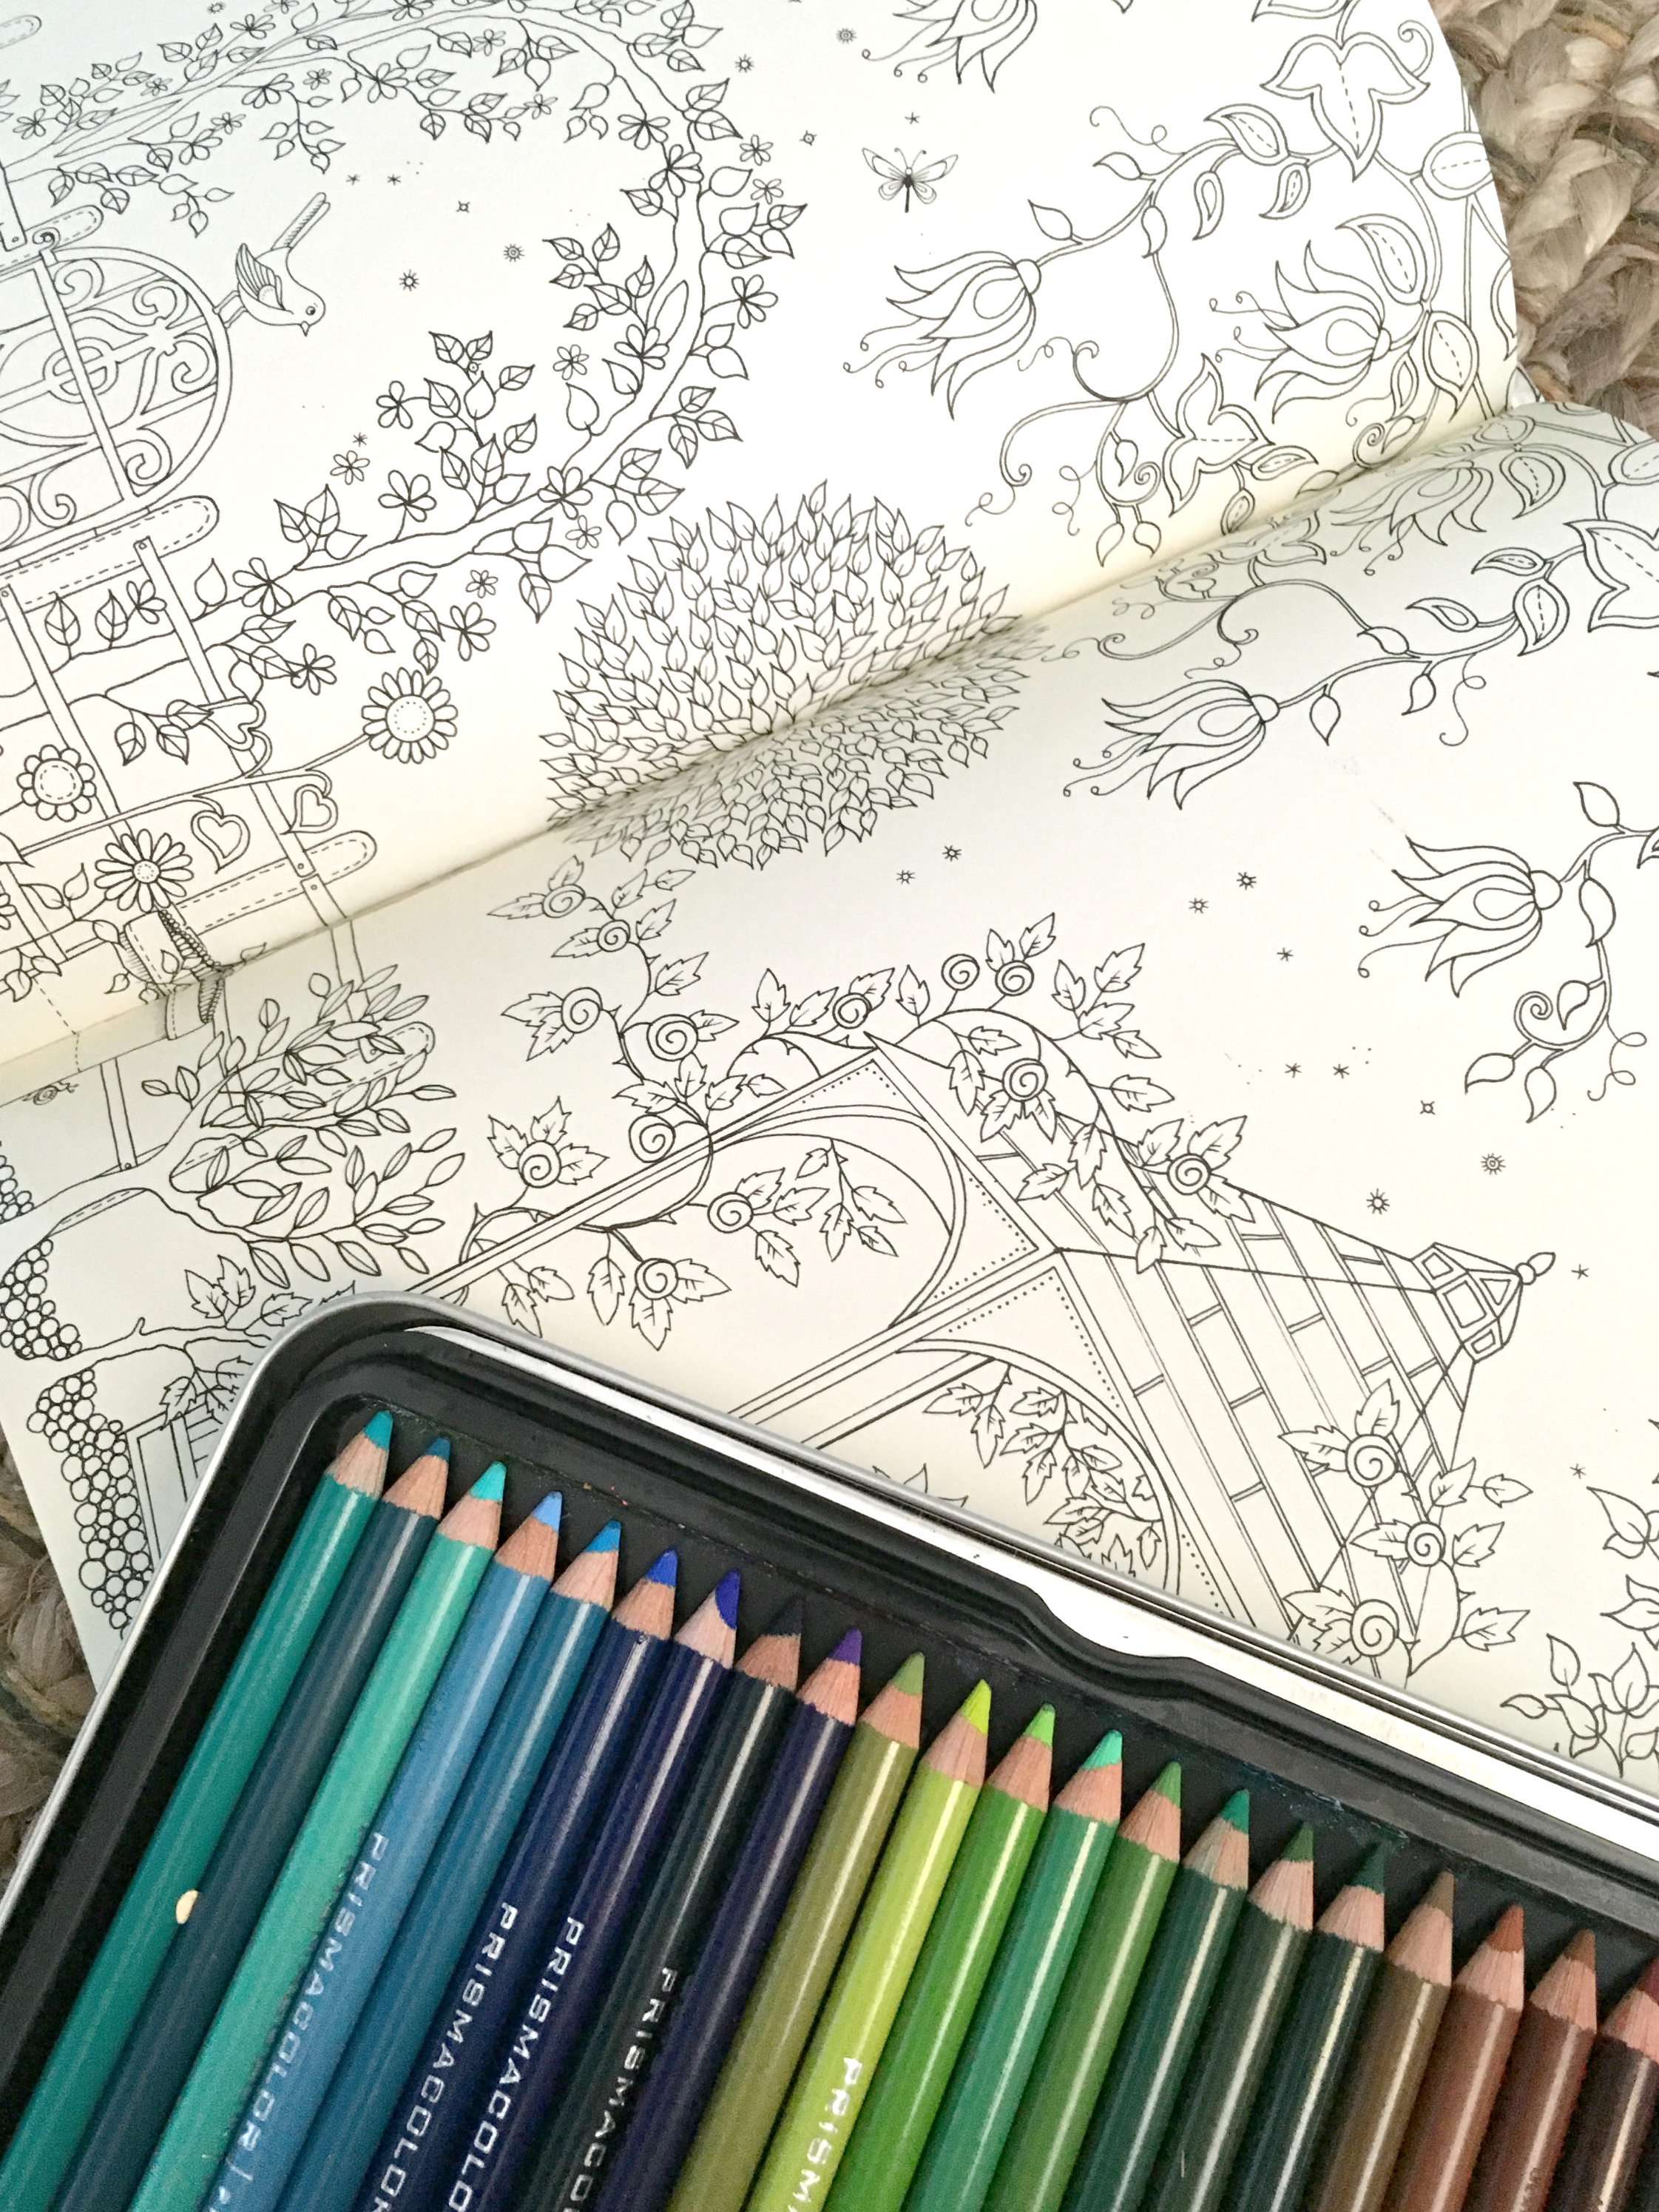 The coolest coloring book ever - Are You Convinced Yet That Coloring Is The Coolest Stress Relieving Idea Ever If You Need Just The Tiniest Bit More Persuasion Let Me Tell You About The